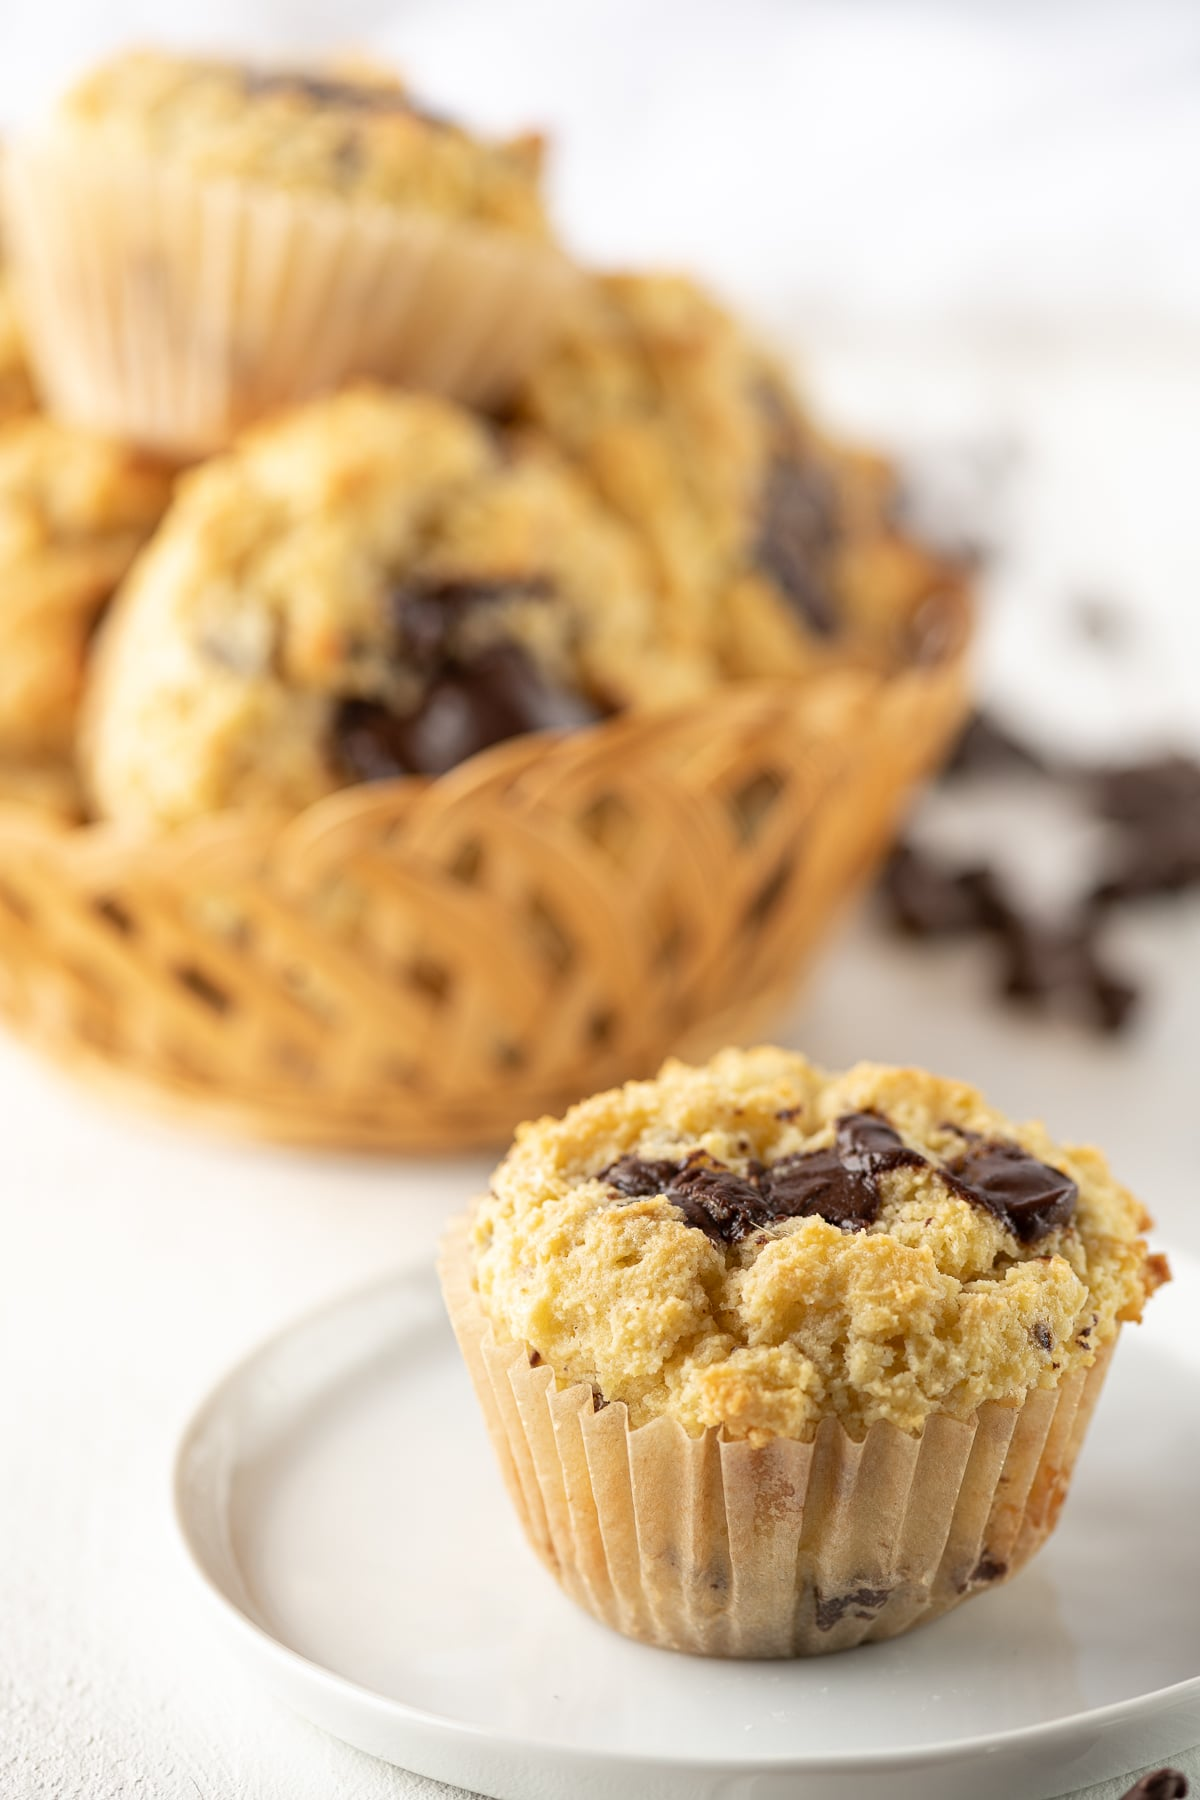 A chocolate chunk banana muffin on a white plate with a basket of muffins in the background.